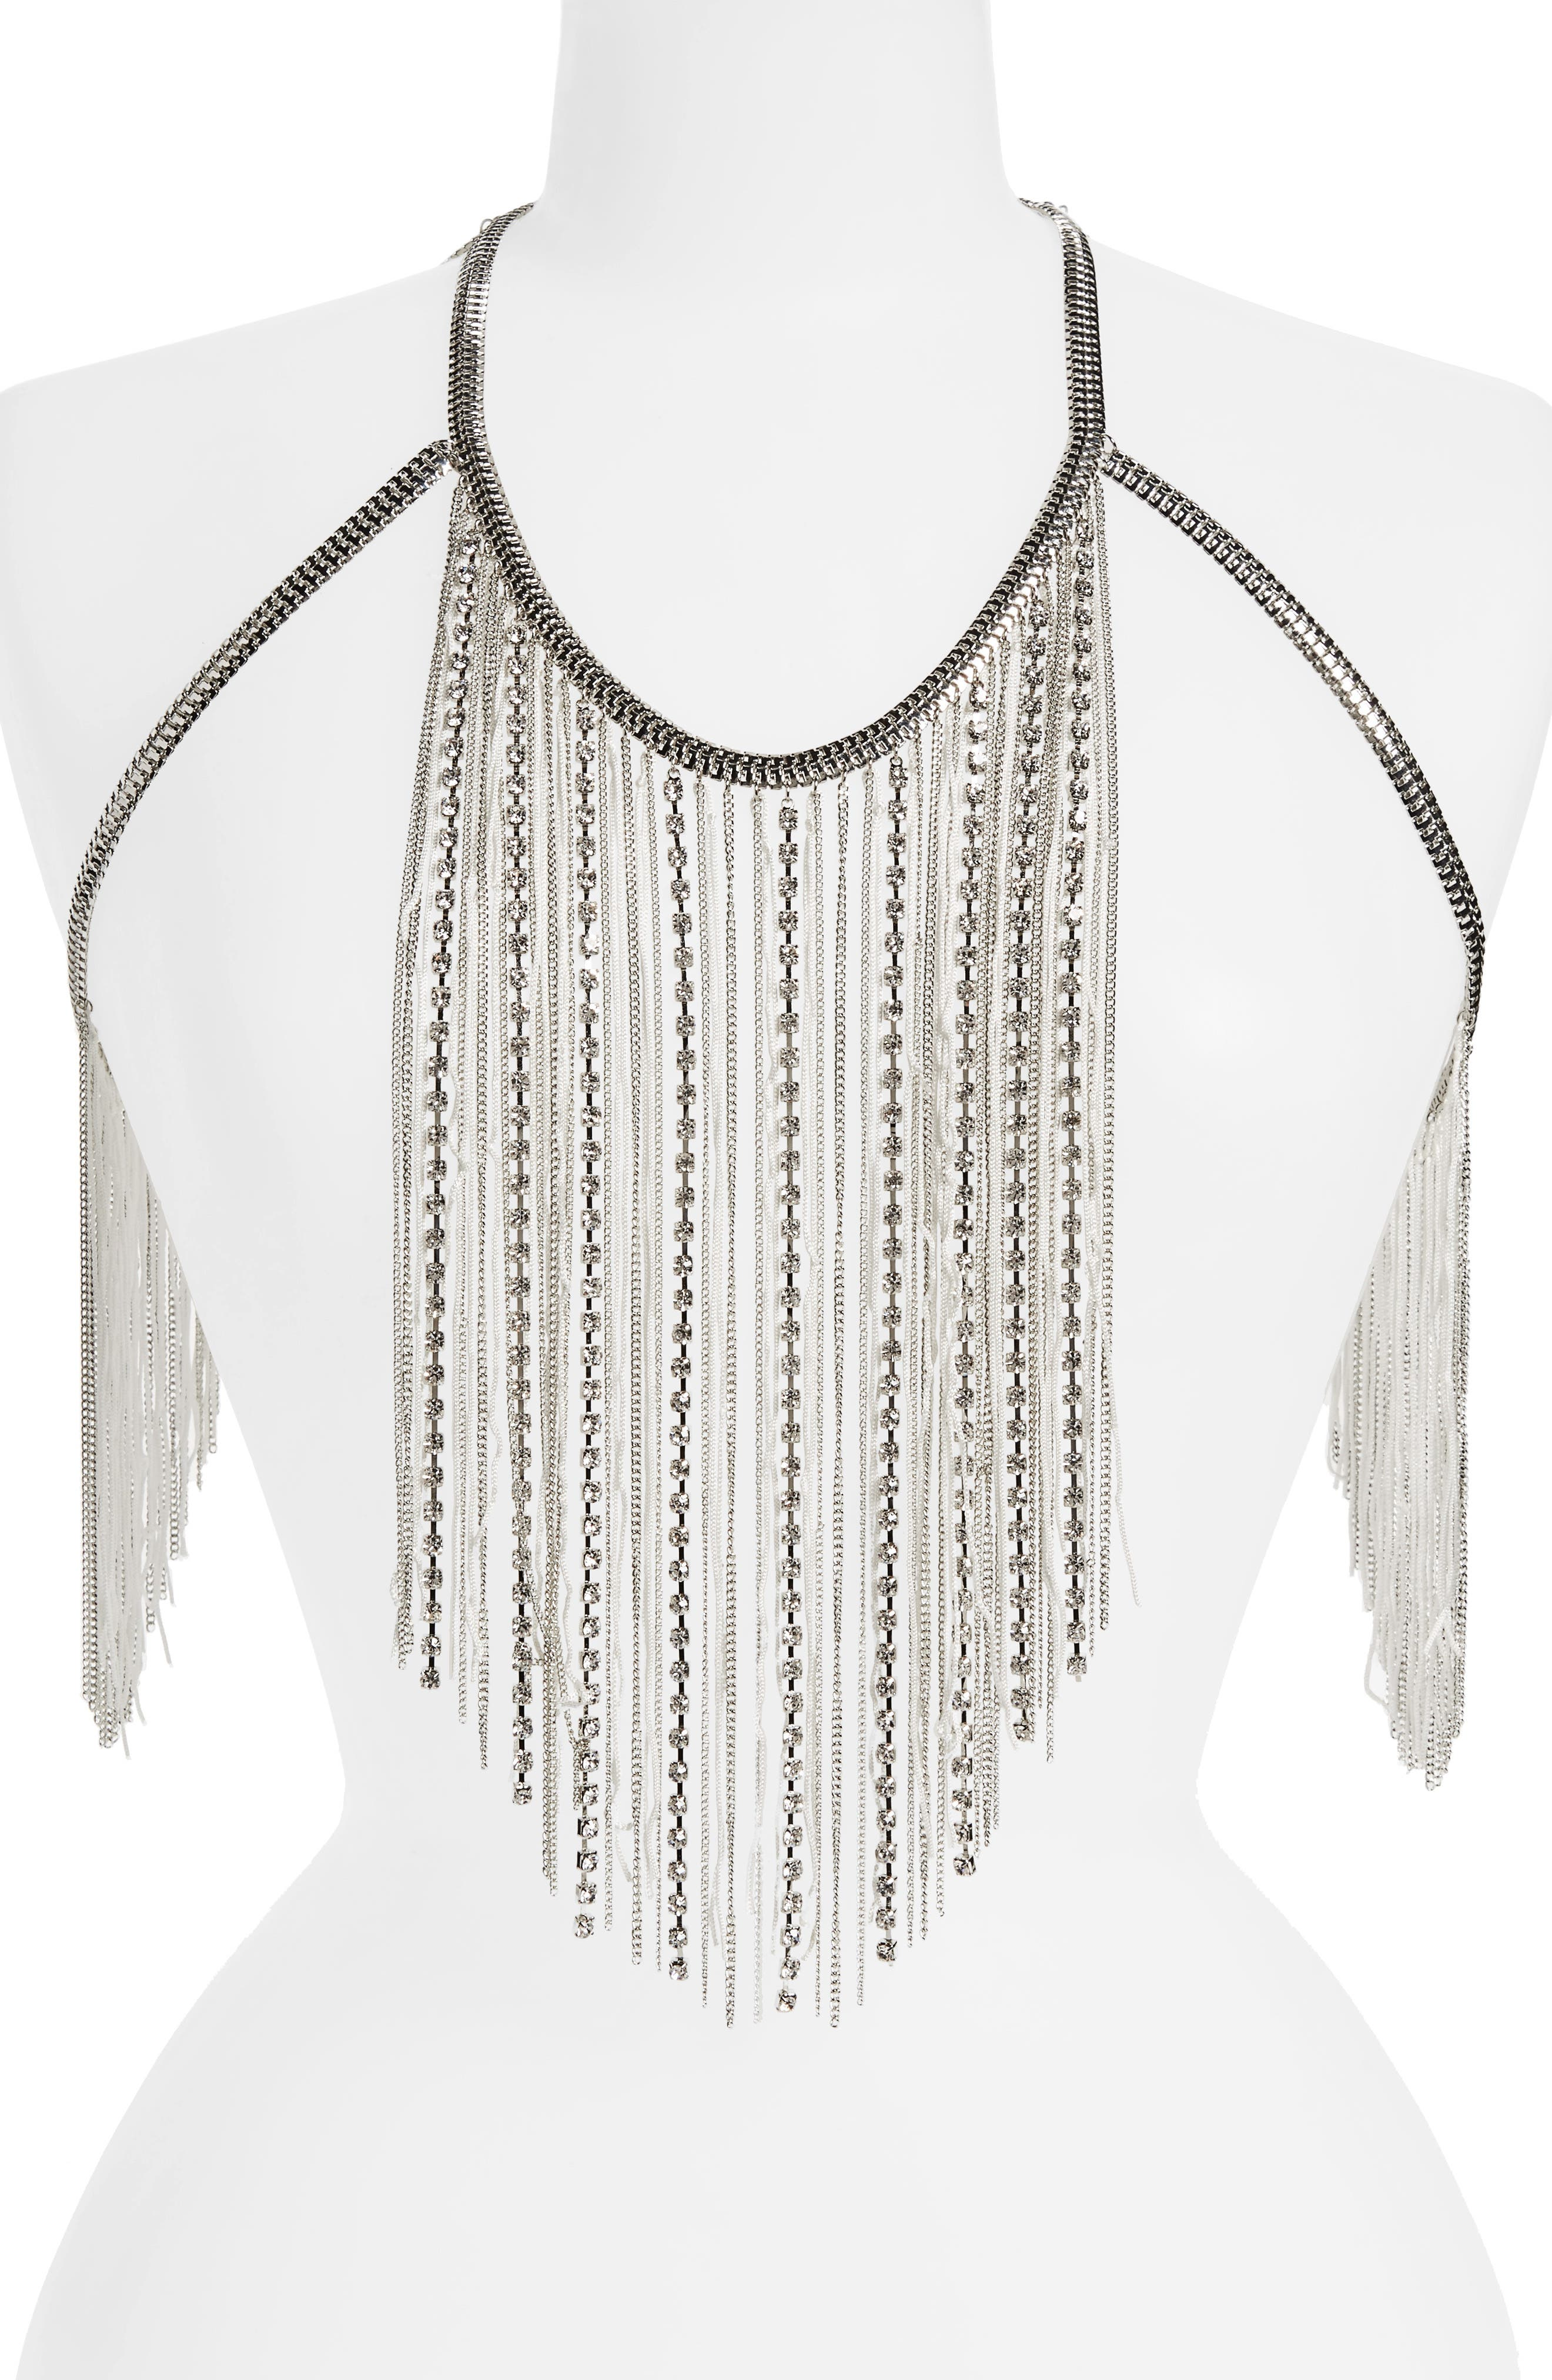 Topshop Wow Body Chain